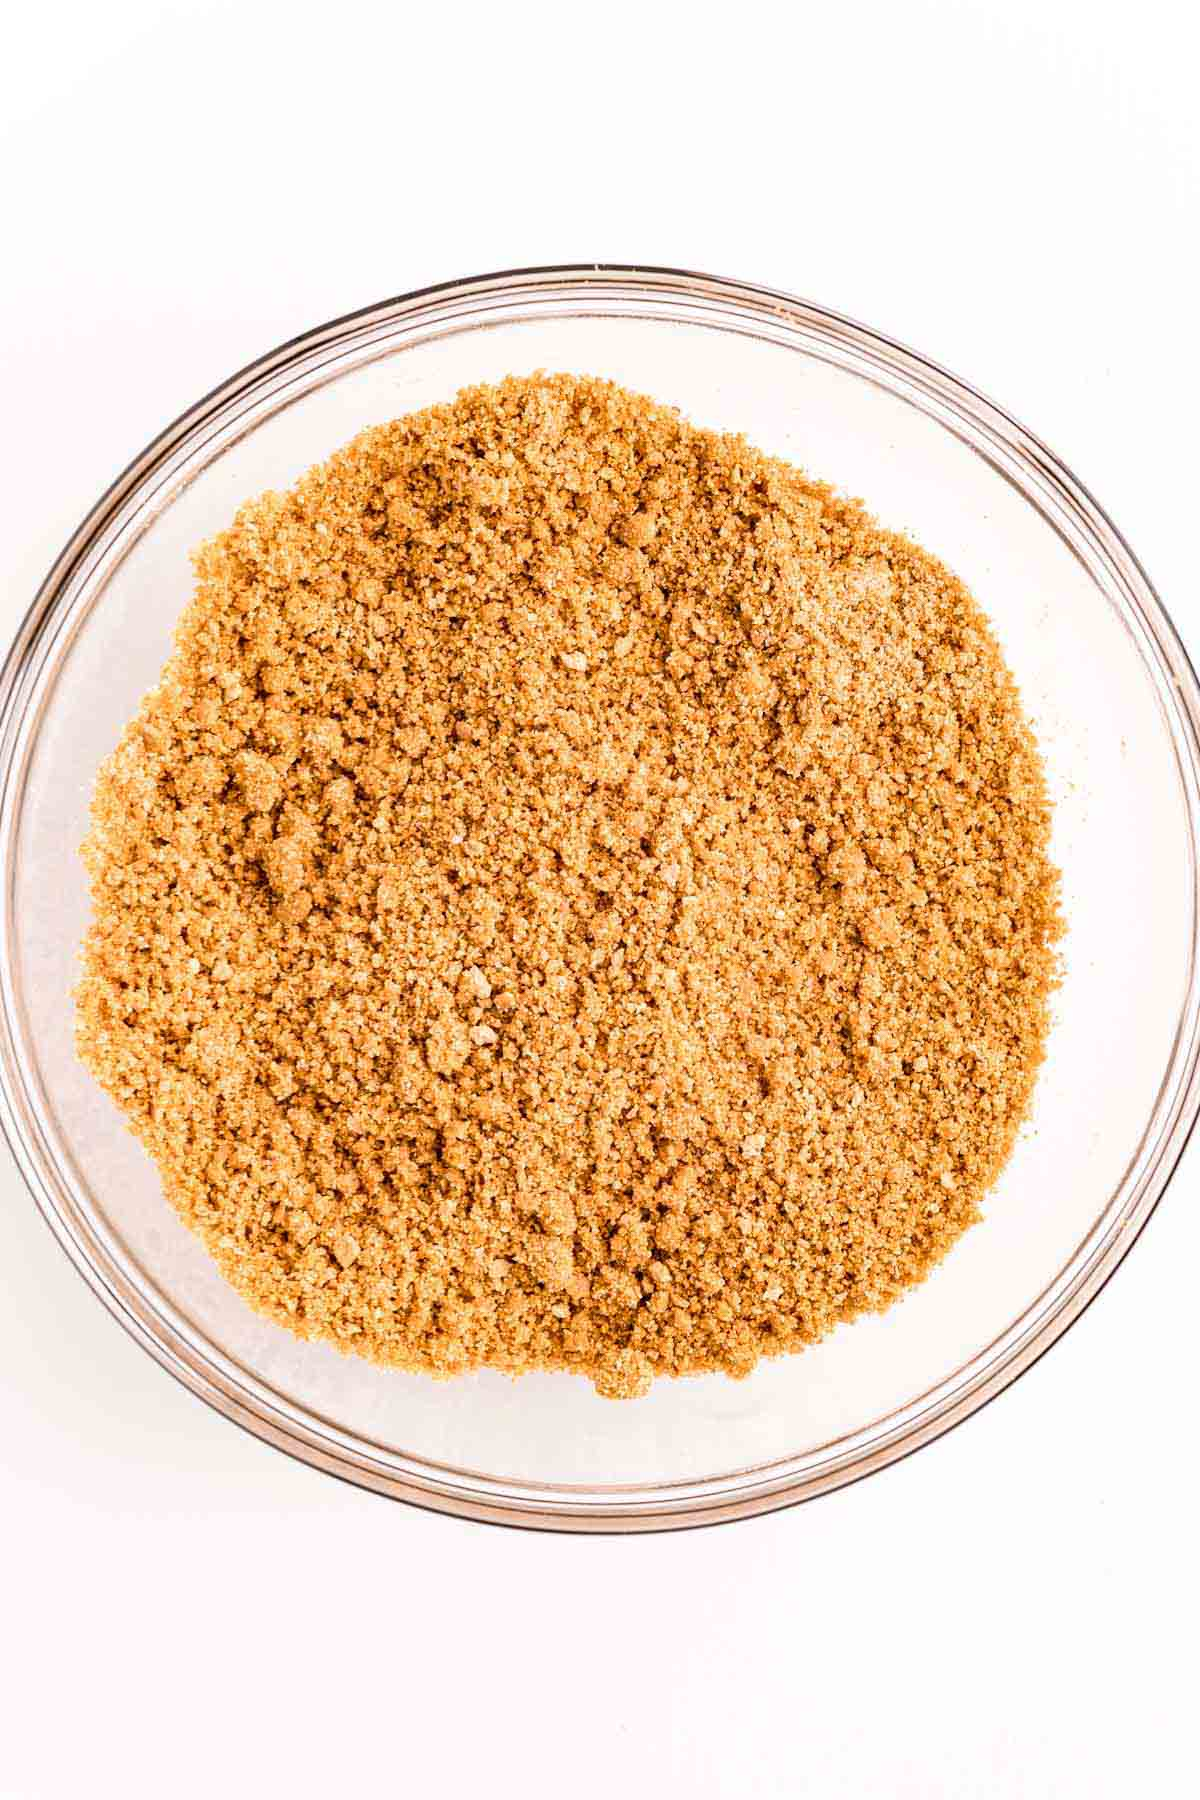 glass bowl with graham cracker crumbs